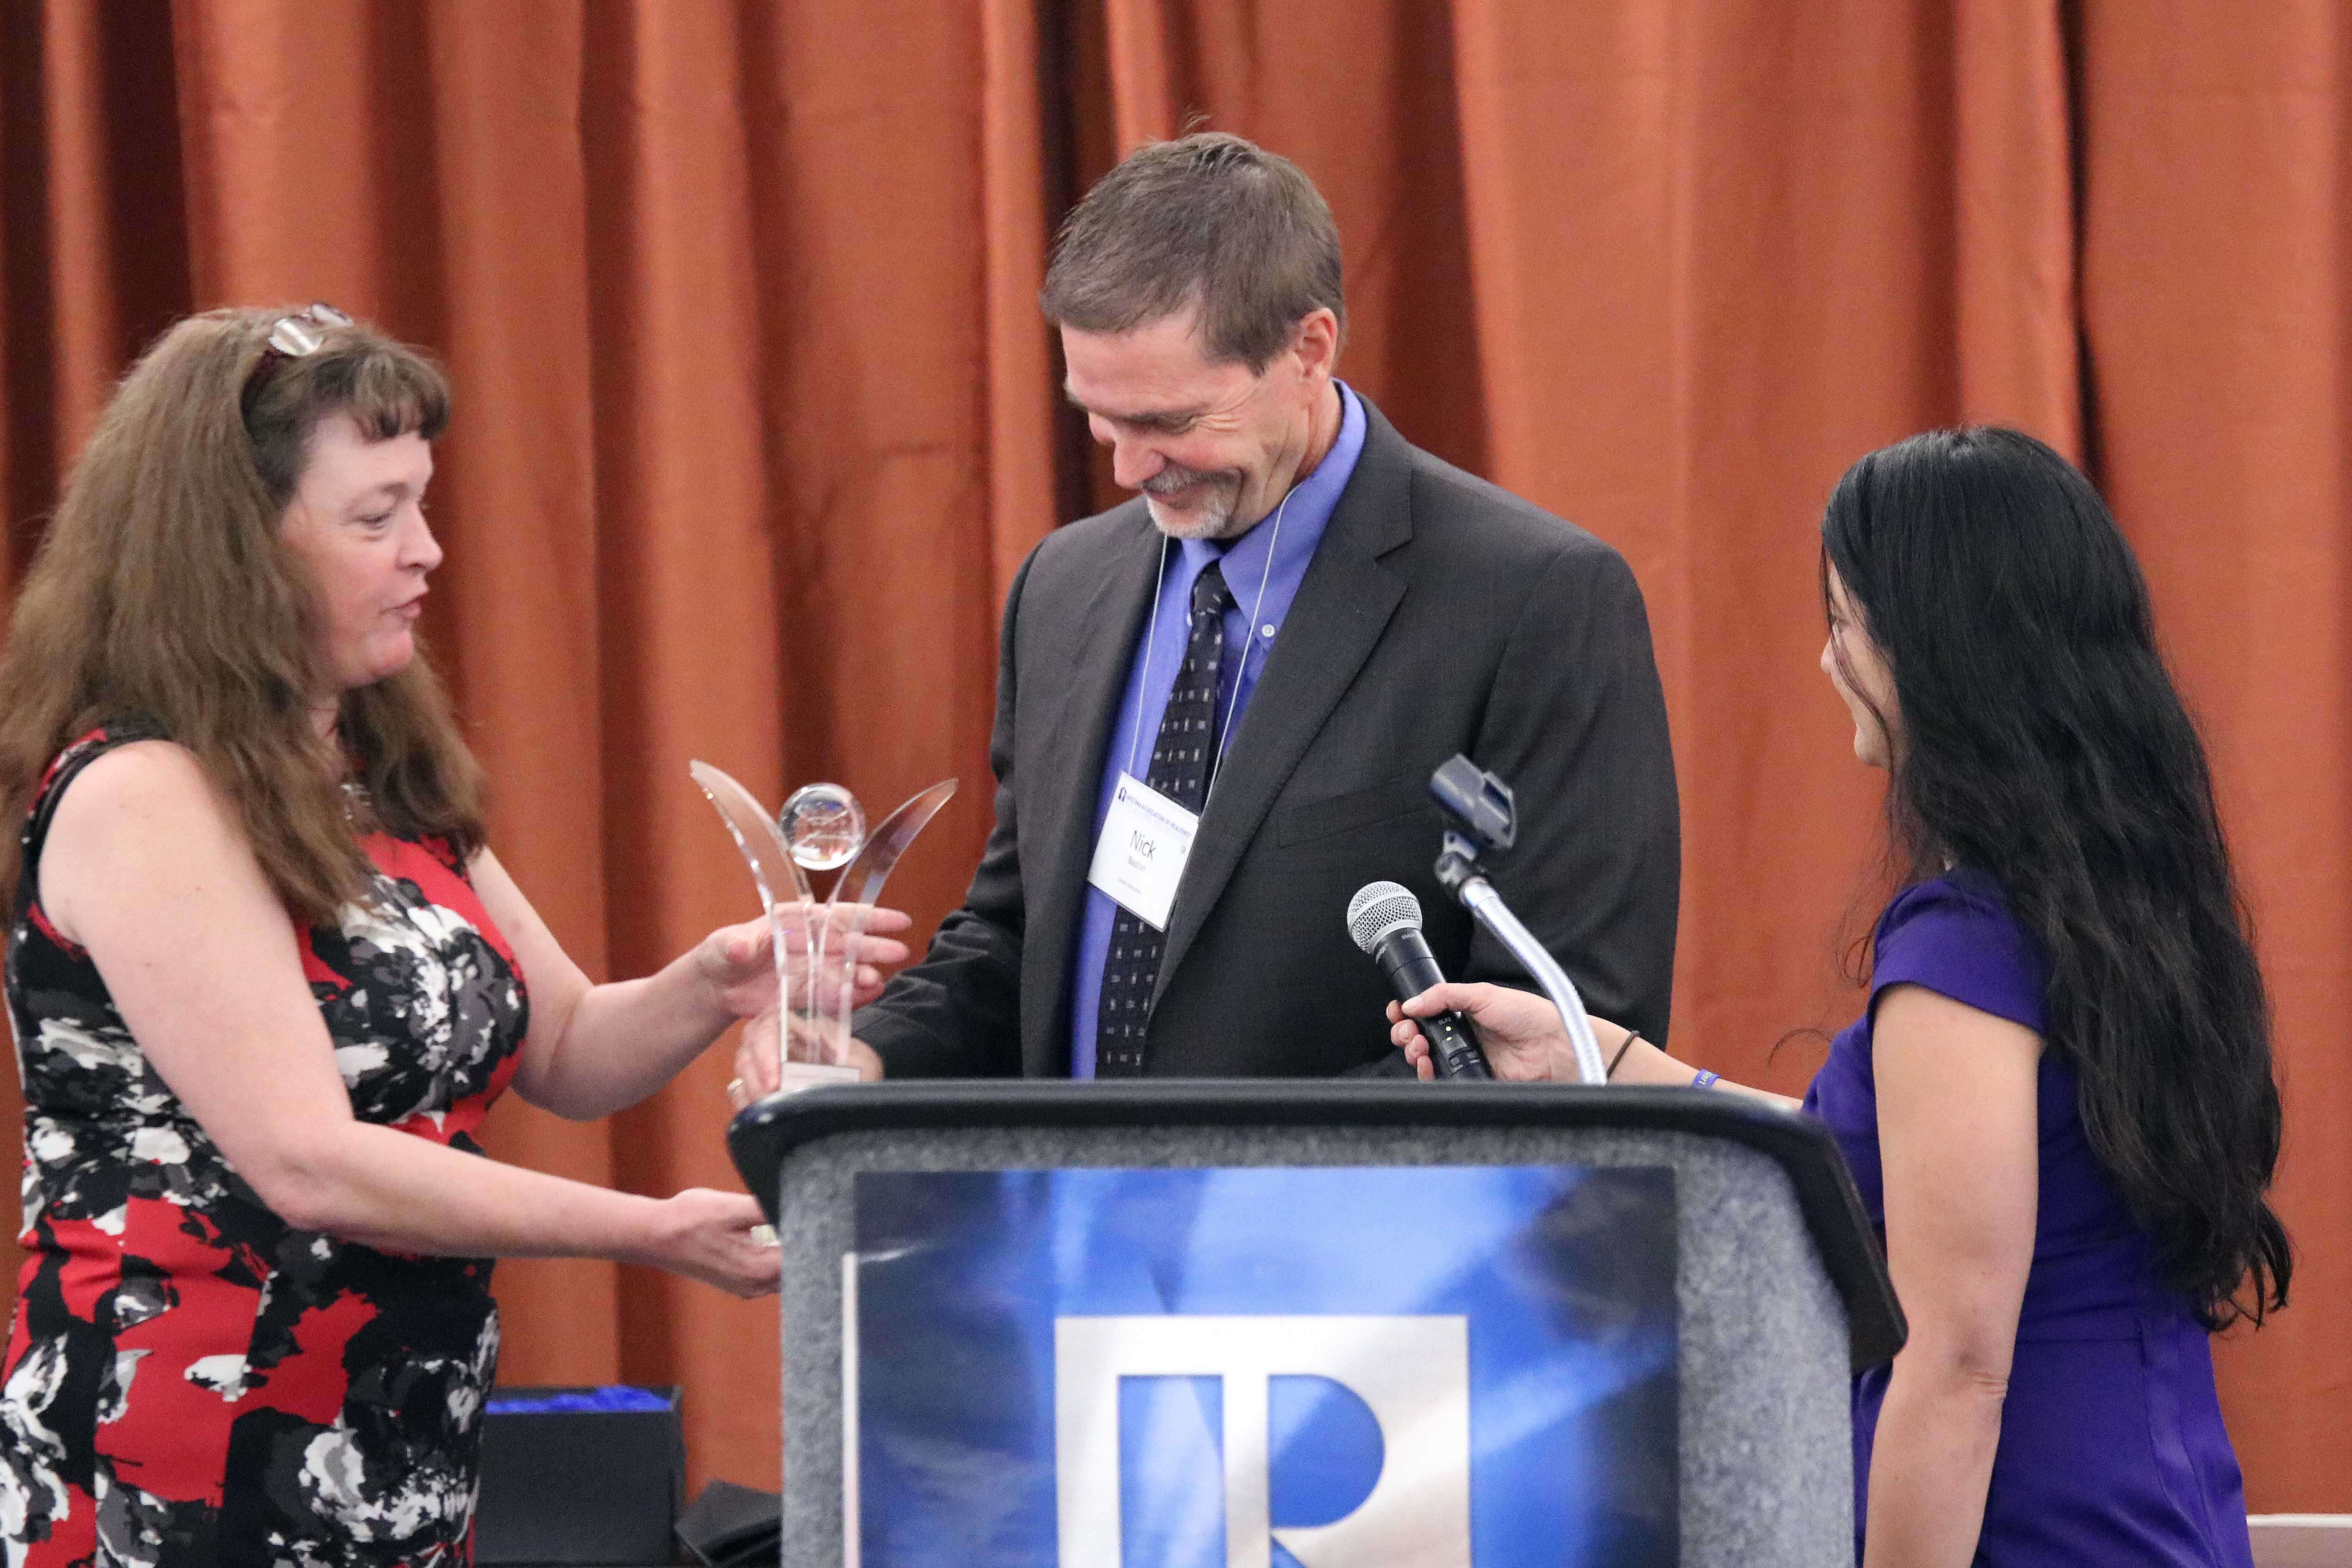 Arizona REALTORS® Director of Association Relations Monica Schulik and 2017 President Paula Monthofer presents the Community Outreach REALTOR® Award to Nick Bastian.